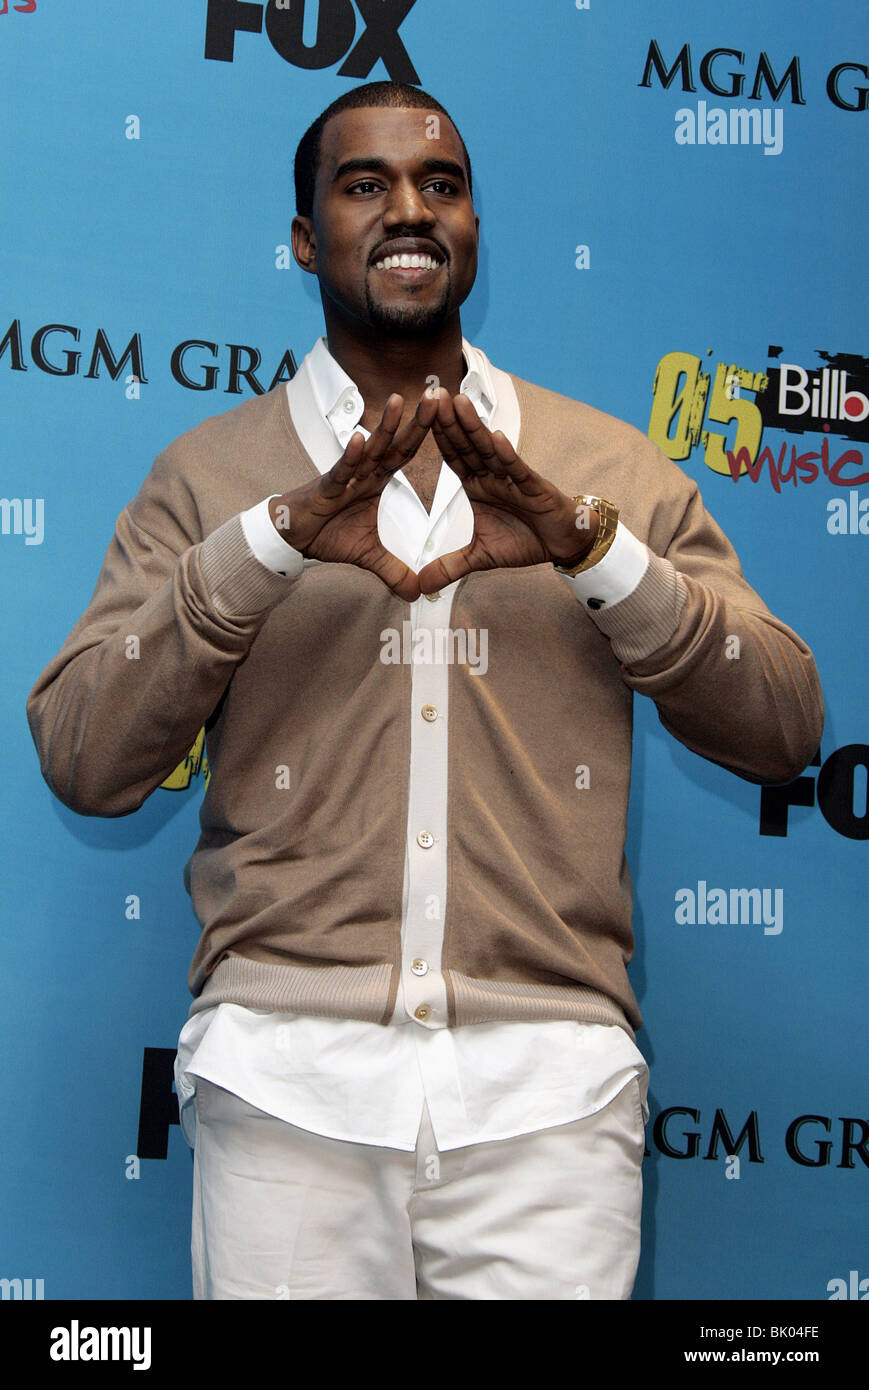 KANYE WEST BILLBOARD MUSIC AWARDS 05 MGM GRAND ARENA LAS VEGAS USA 06 December 2005 Stock Photo